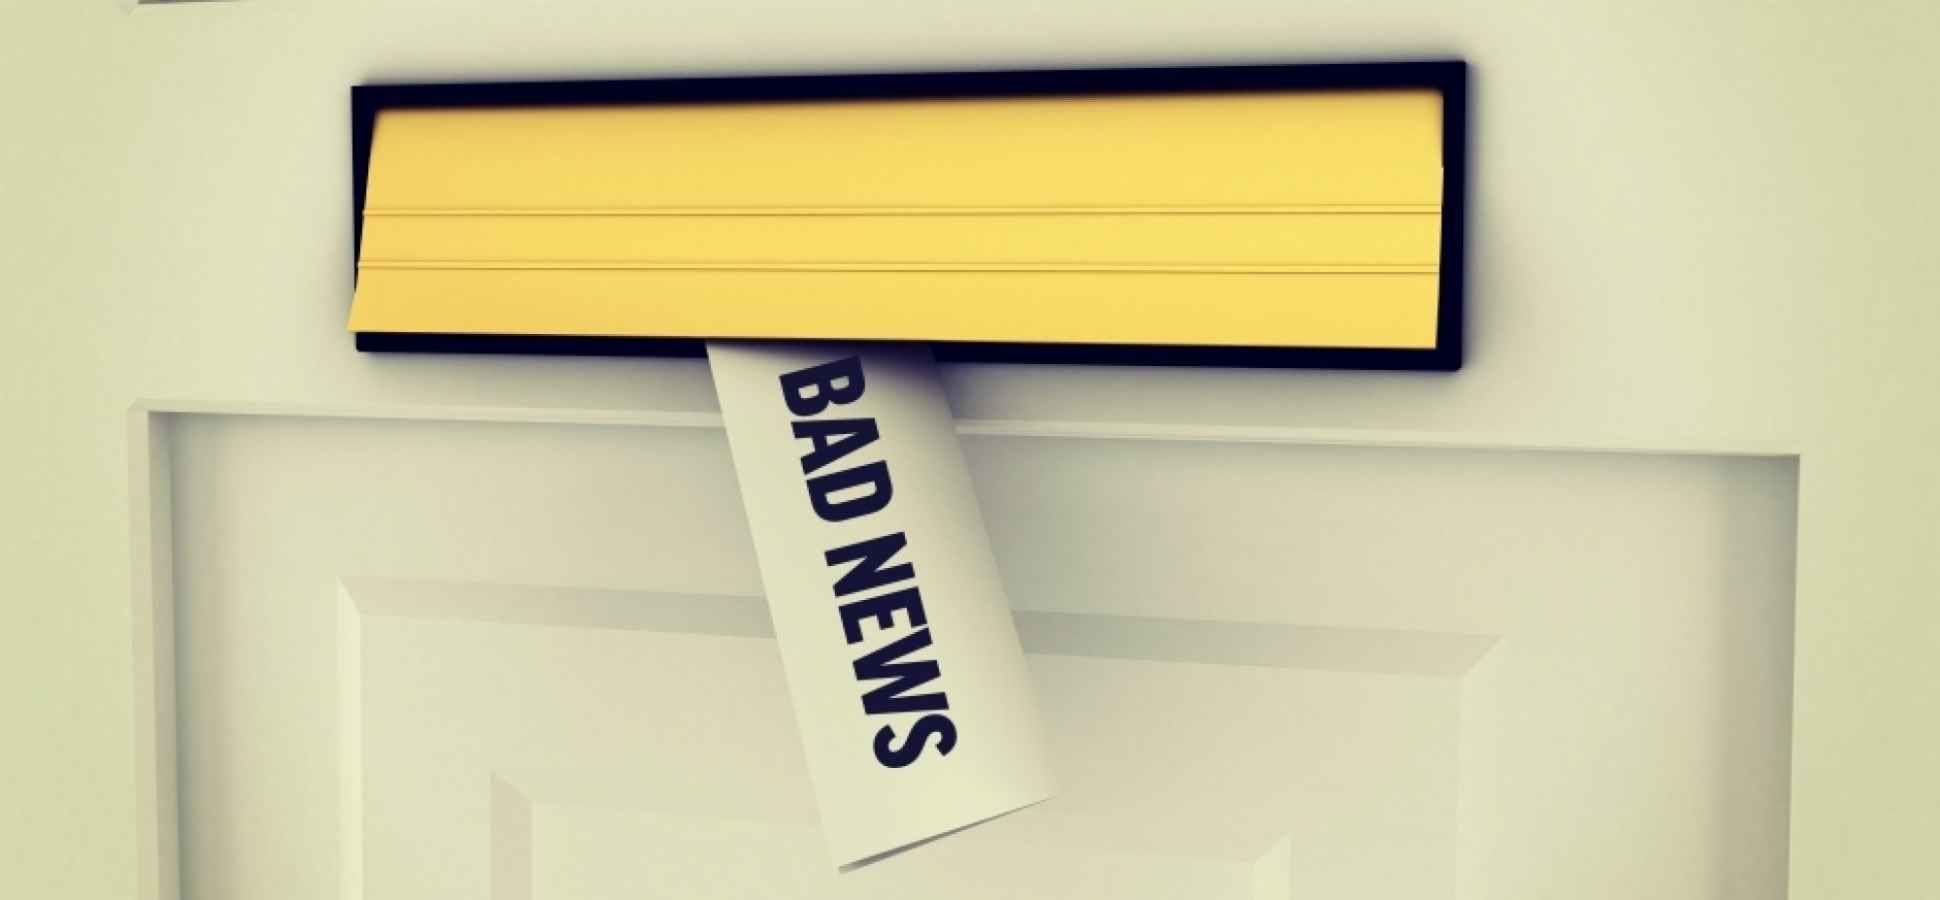 How to deliver bad news to employees - How To Deliver Bad News To Employees 46